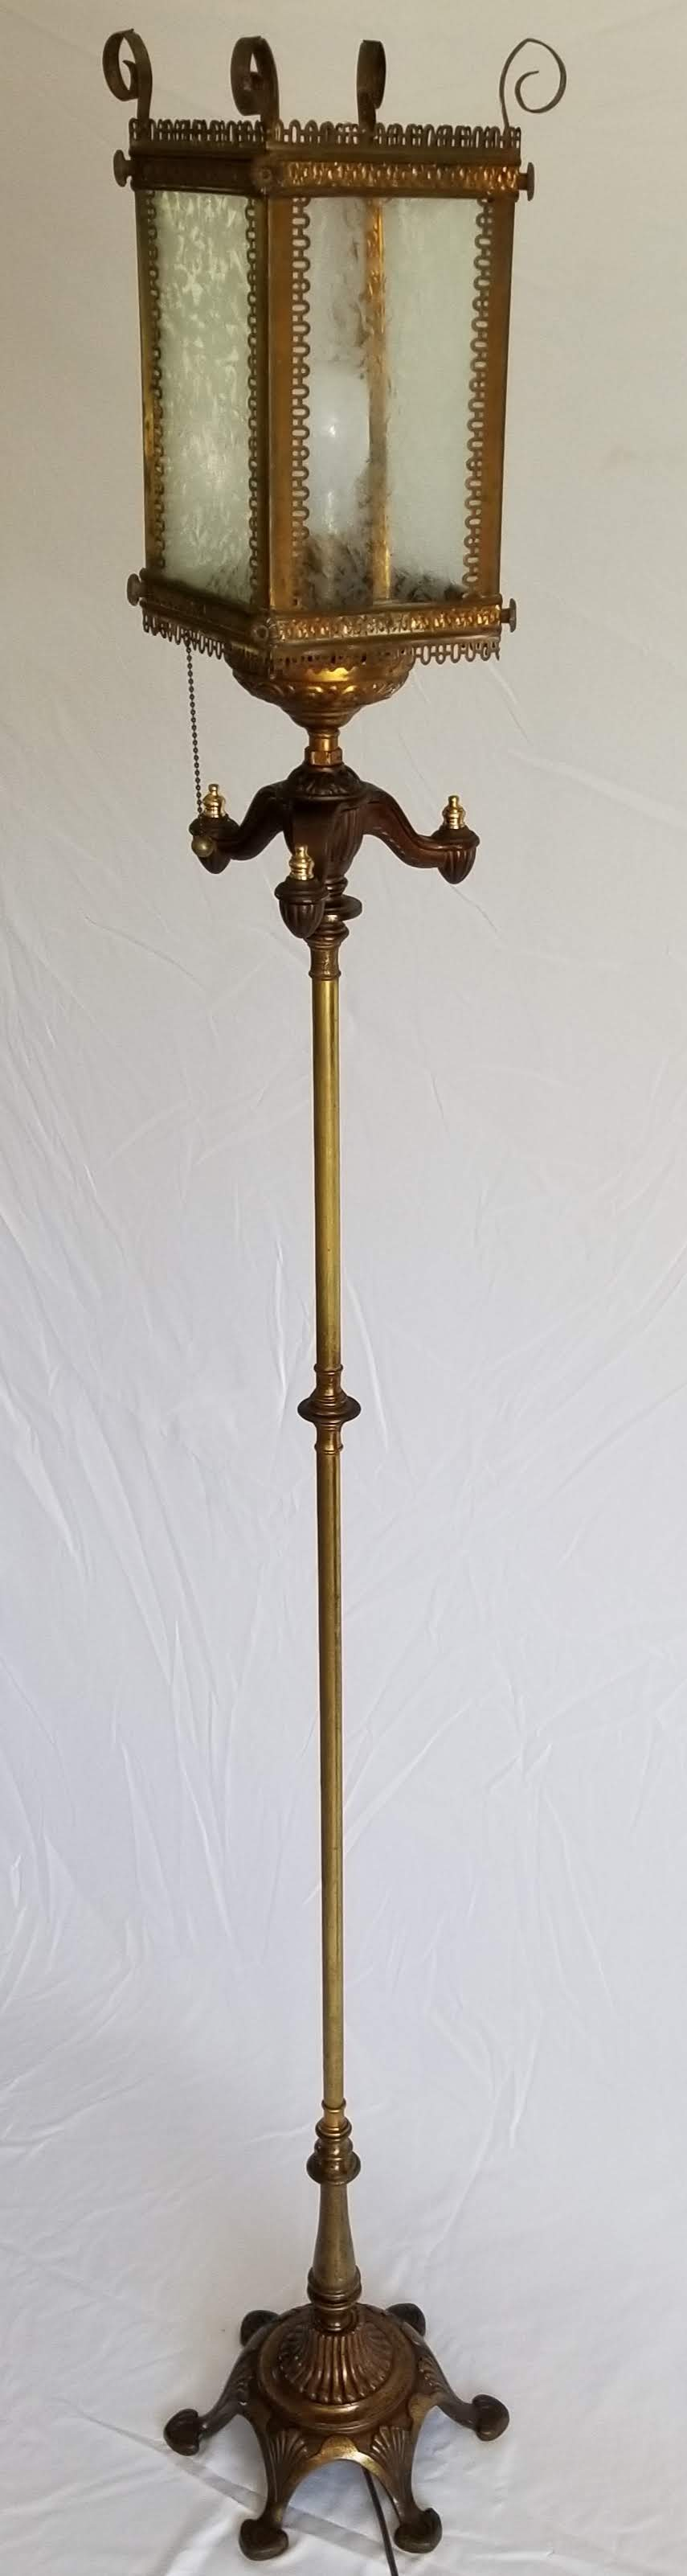 """SOLD.  We found a mid-Century floor lamp with the right patina to match the 1930's gas-powered porch light. Flipped upside down and mounted atop makes for an unusual and eclectic conversation piece.  Height: 56"""""""